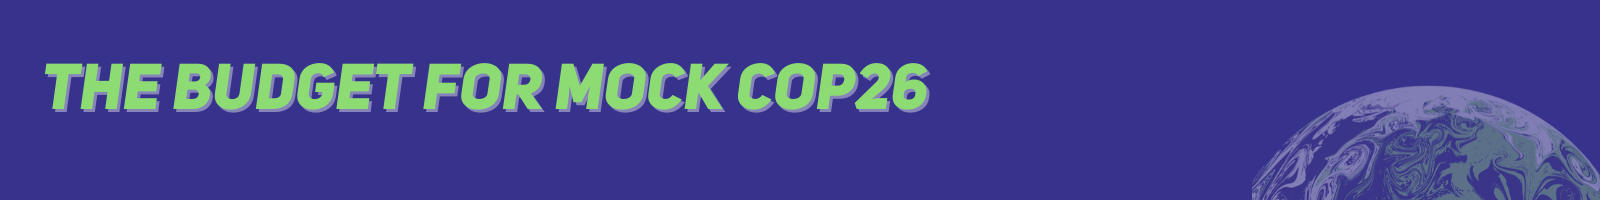 The budget for Mock COP26